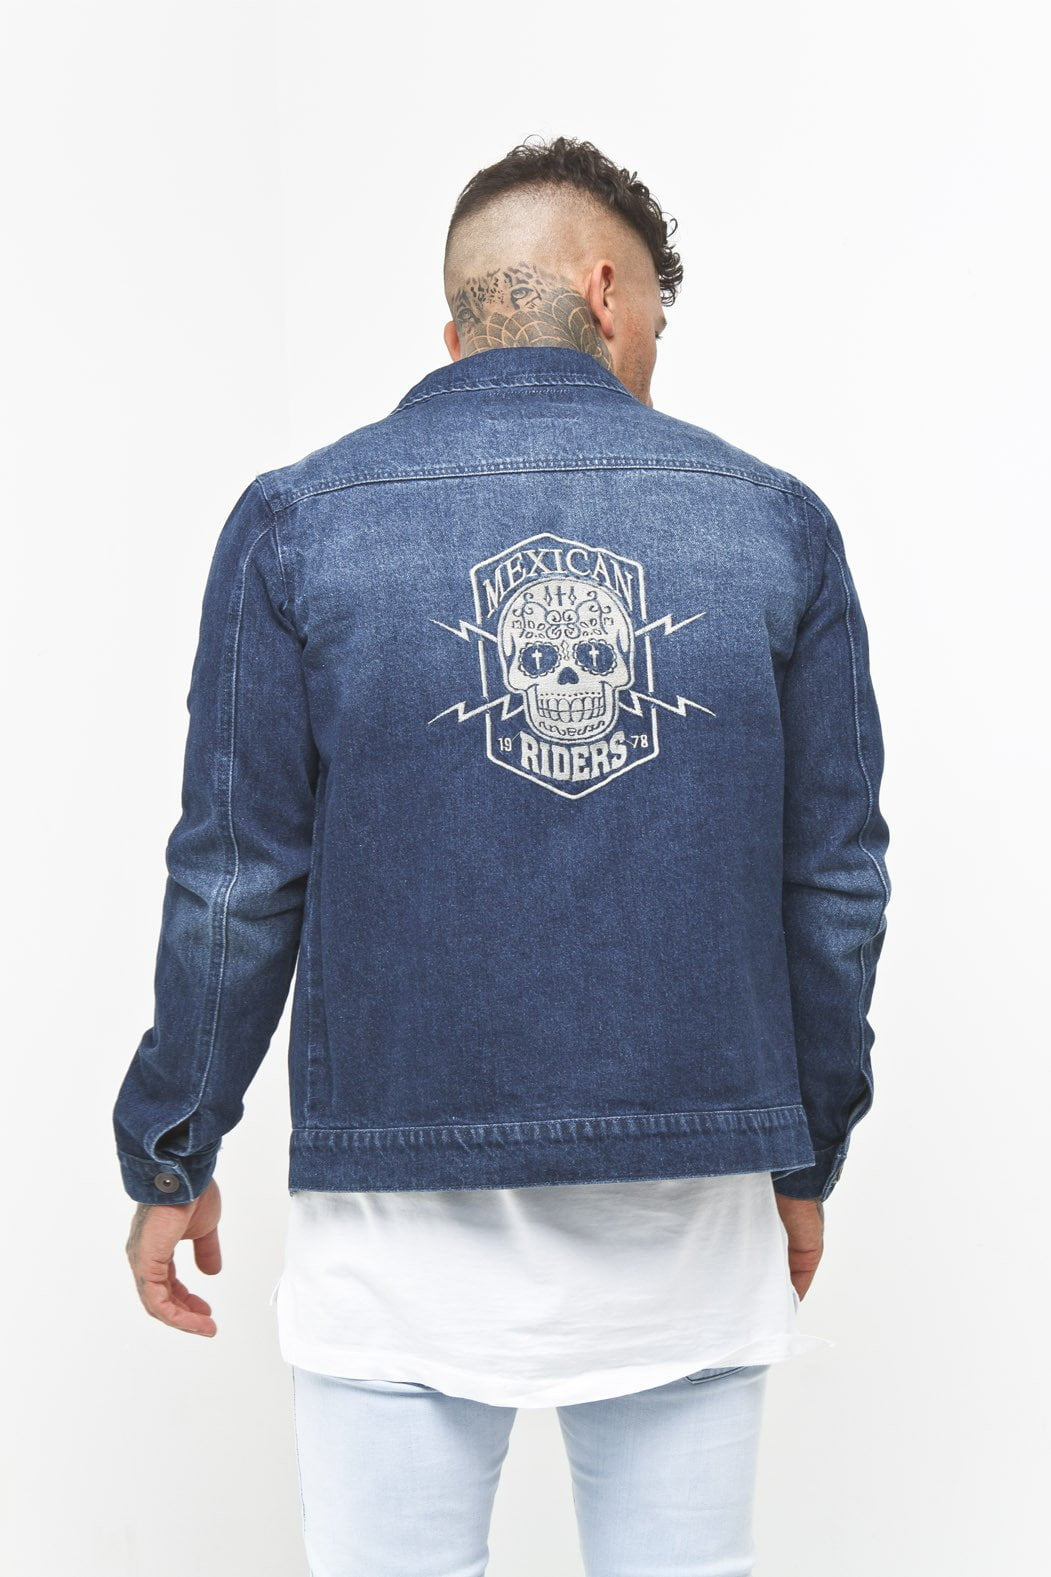 Liquor n Poker - Denim Mexican Riders Jacket - Liquor N Poker  Liquor N Poker